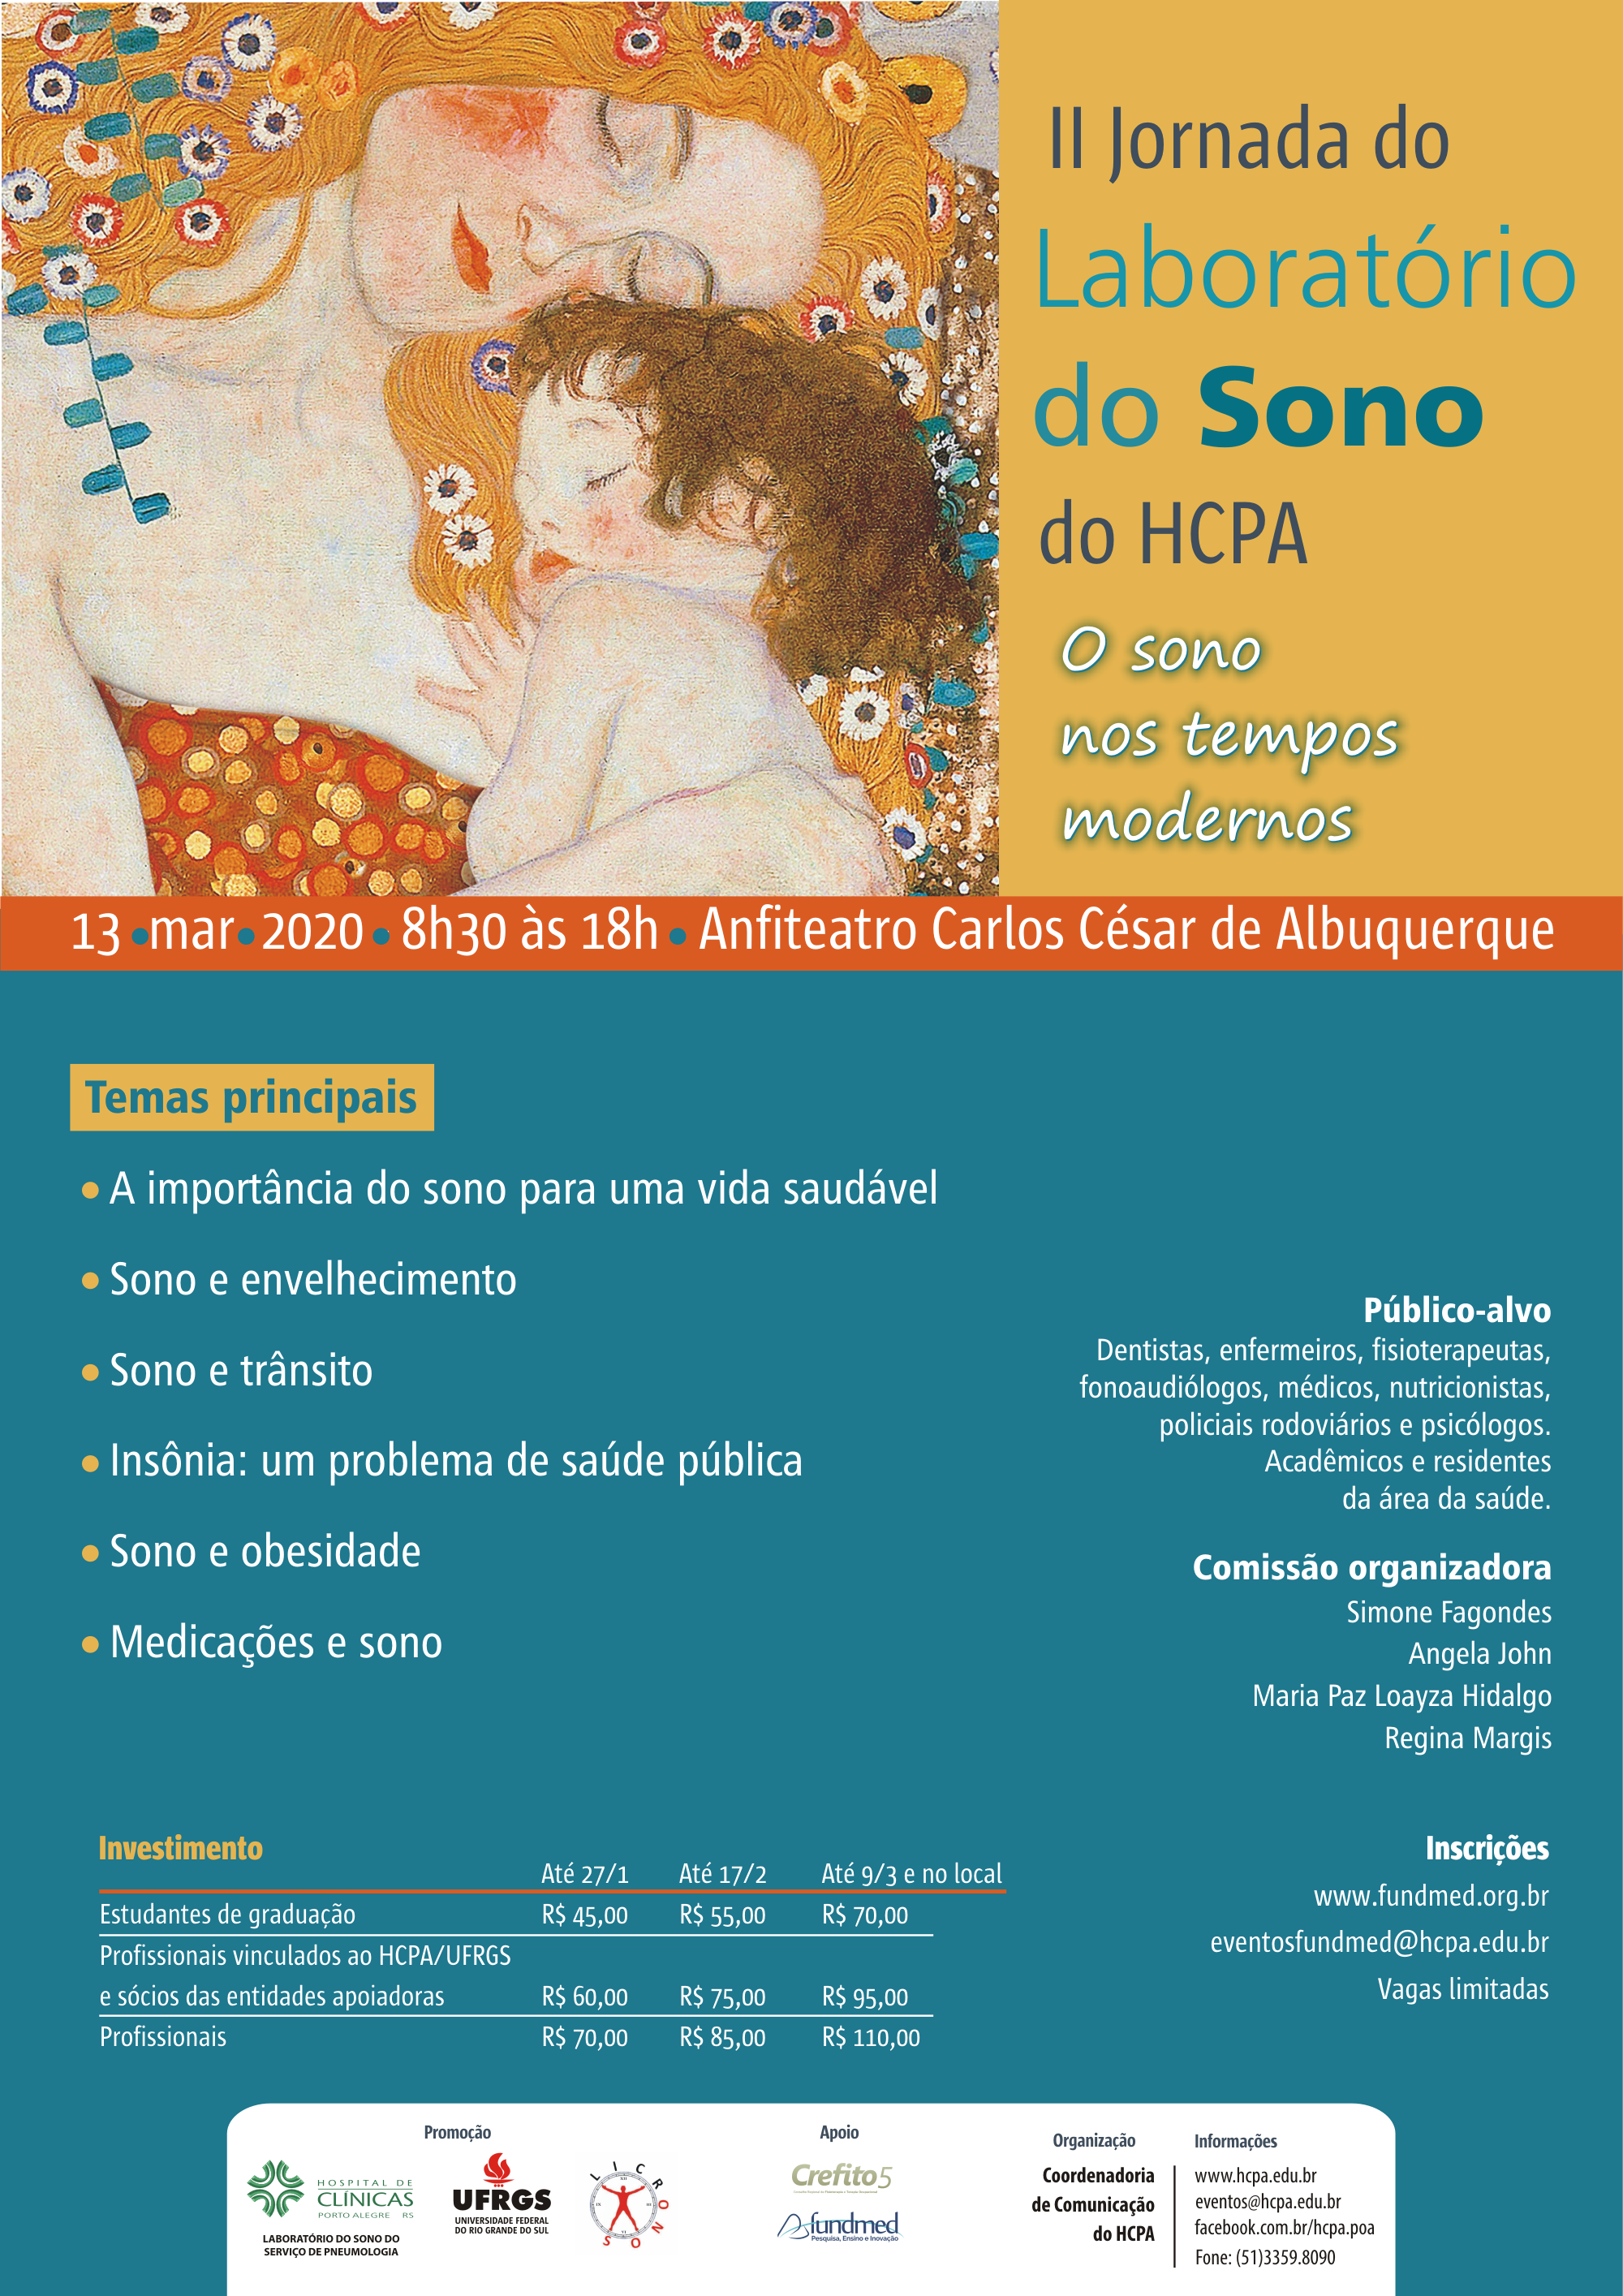 jornada_do_laboratorio_do_sono__cartaz_copia_3.png